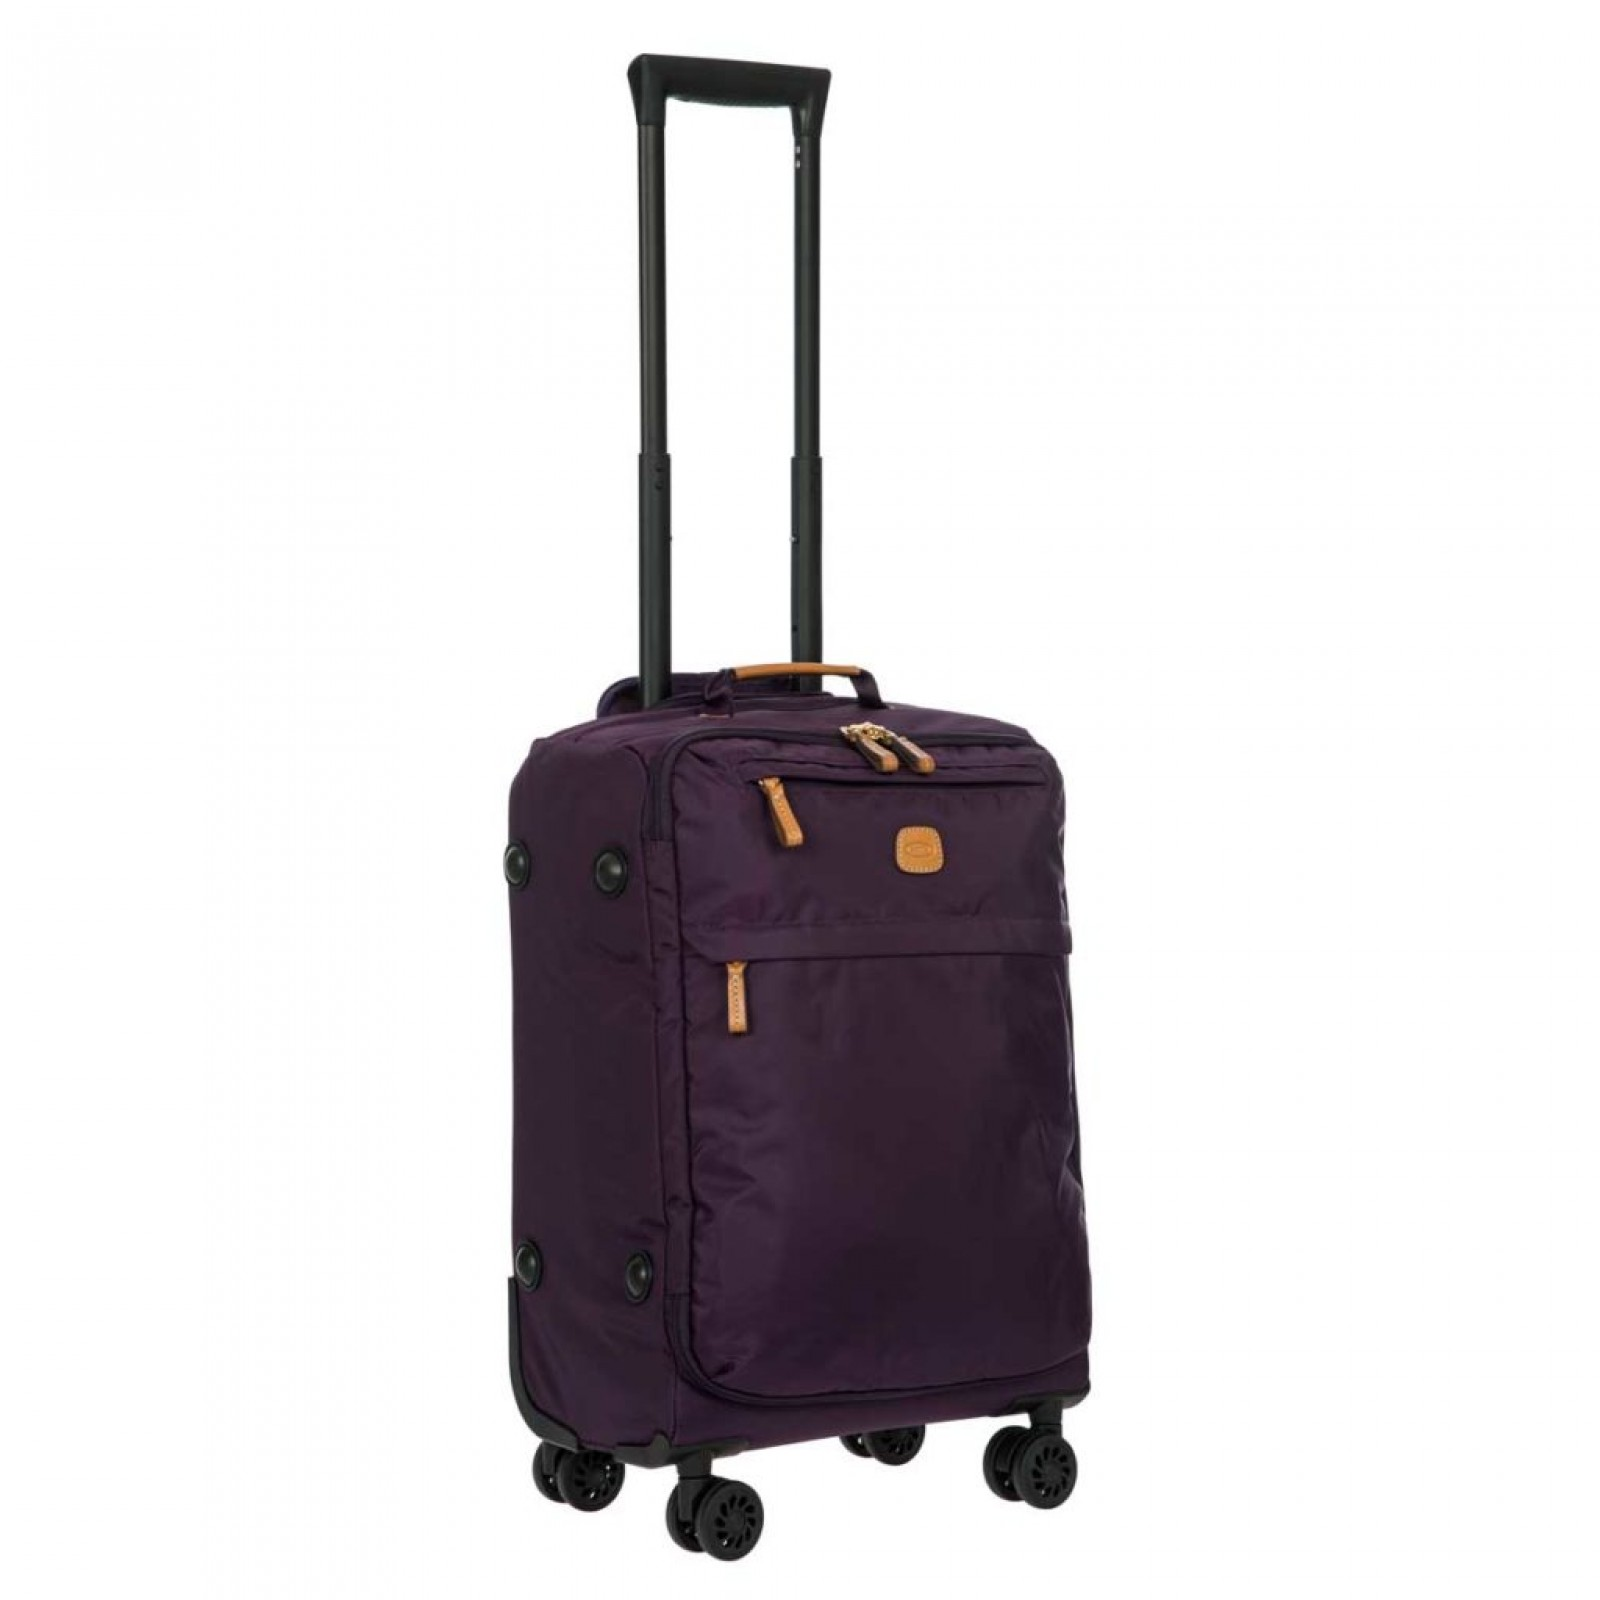 Bric S X Bag 21 Quot Spinner Bxl48117 101 Luggage World Mn